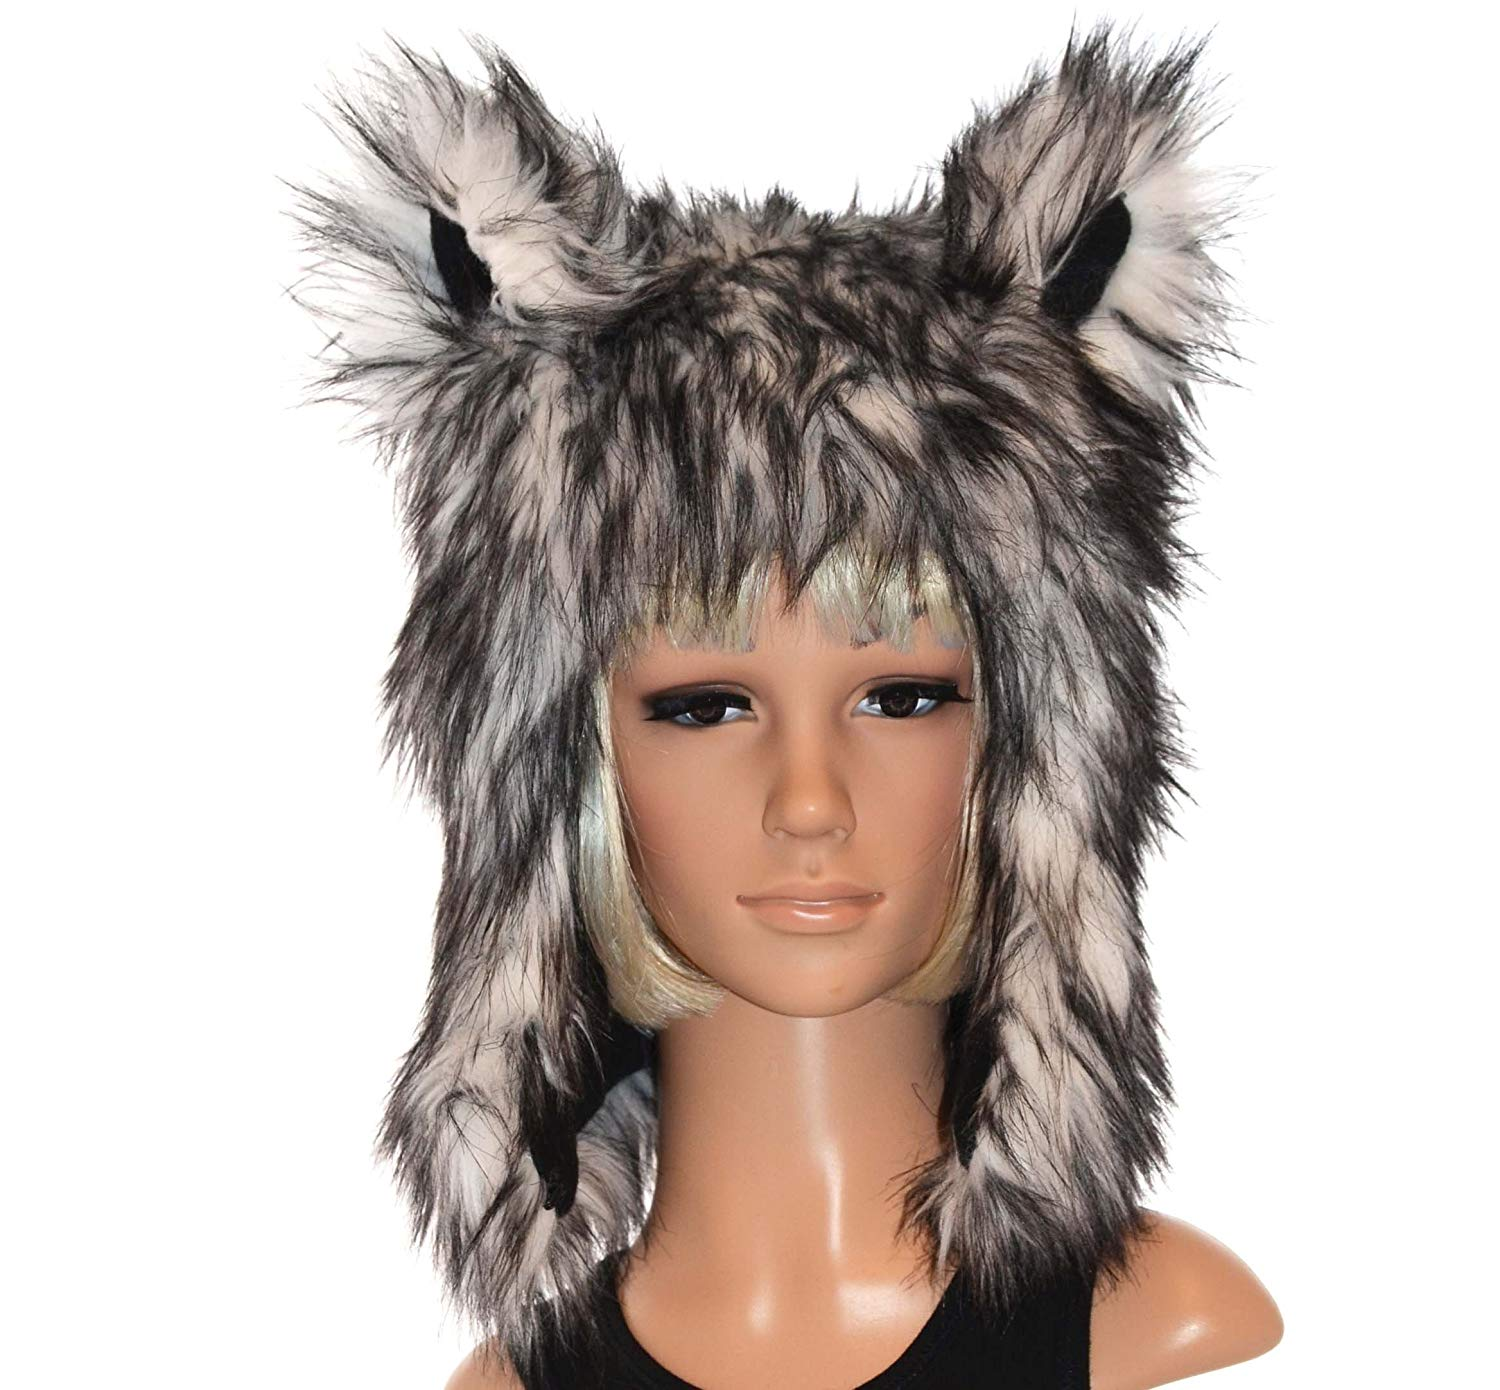 cafd7d0185b Get Quotations · Husky Wolf Hat Faux Fur Animal Hat